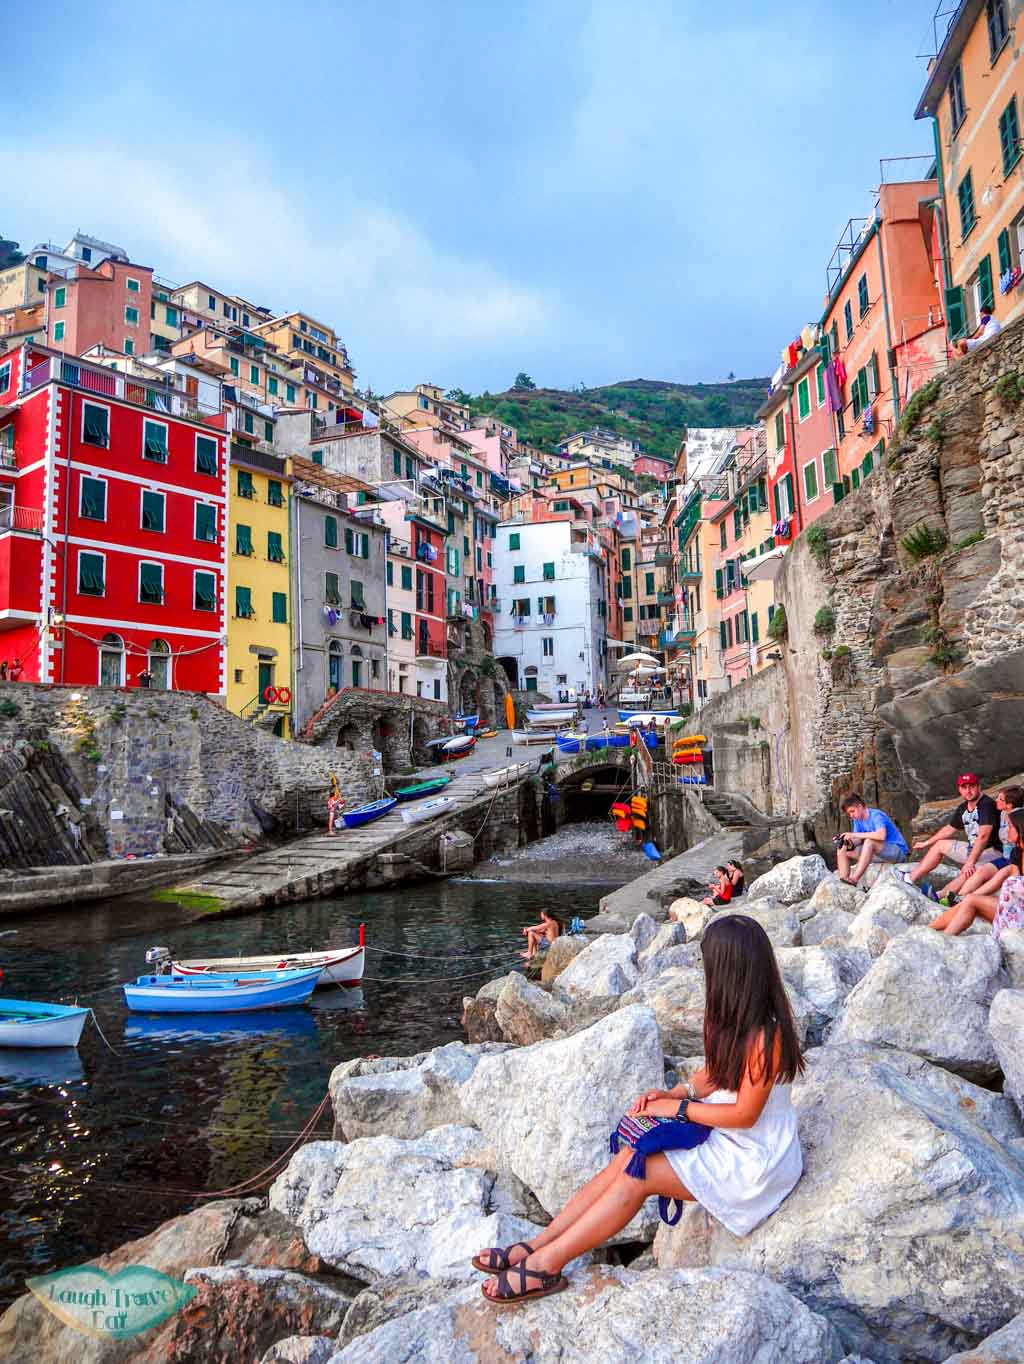 me at rocky beach riomaggiore cinque terre italy | Laugh Travel Eat